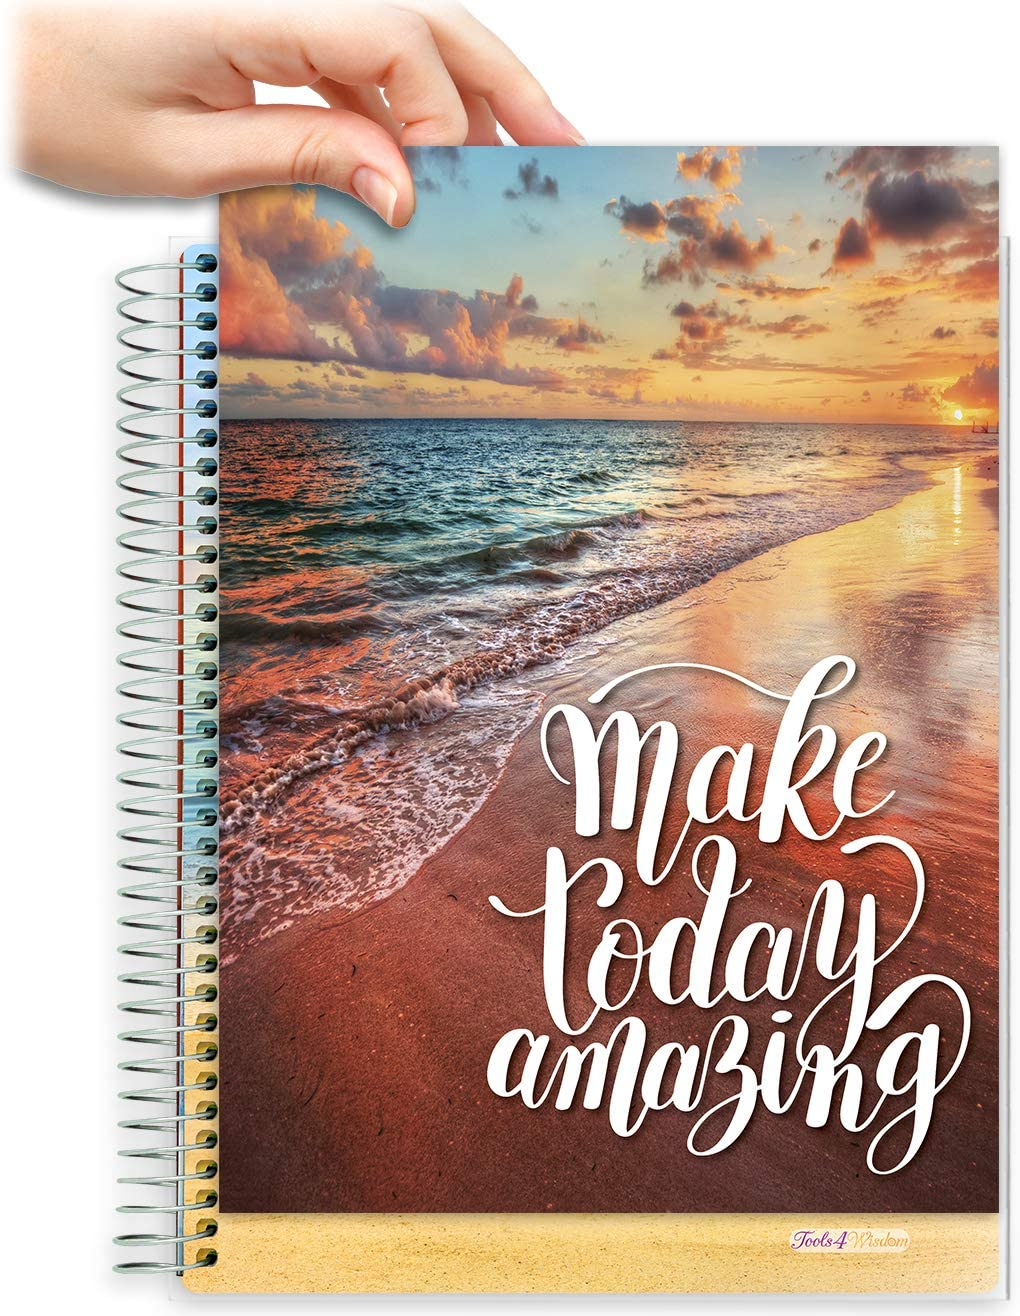 8.5x11 Customizable Softcover Planner • April 2021 to June 2022 Academic Year • Make Today Amazing